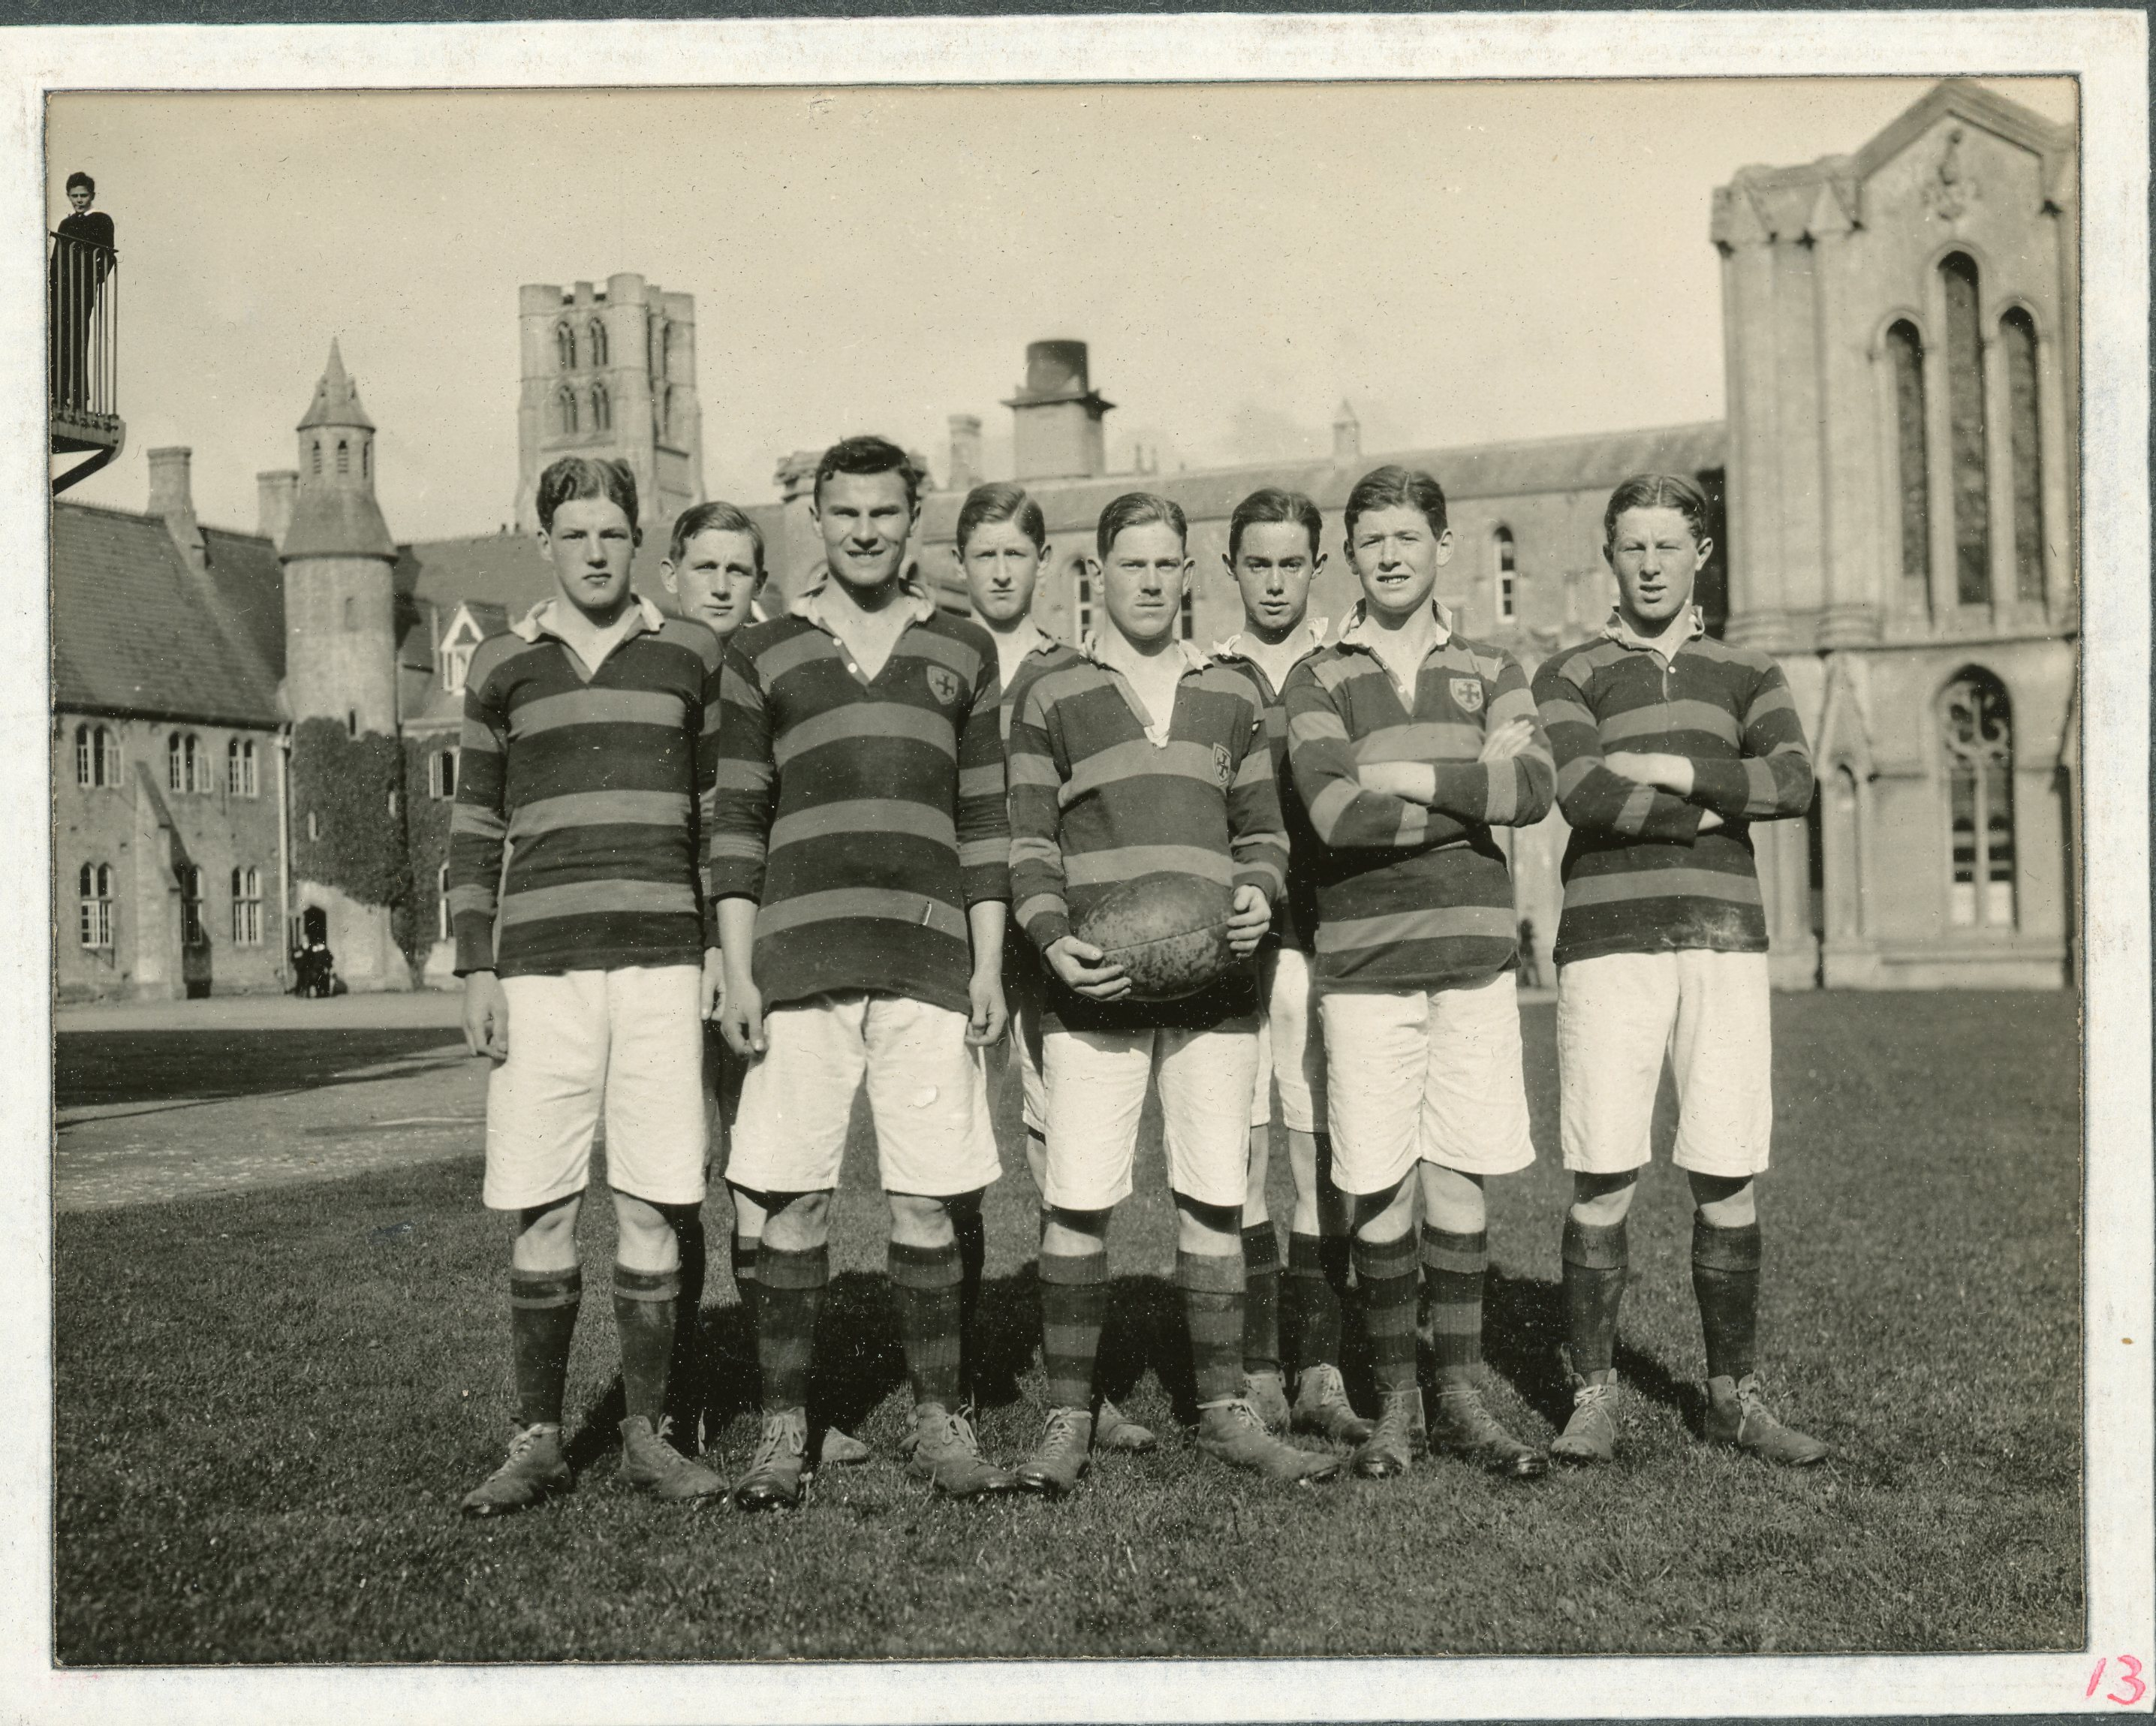 Downside Abbey rugby team